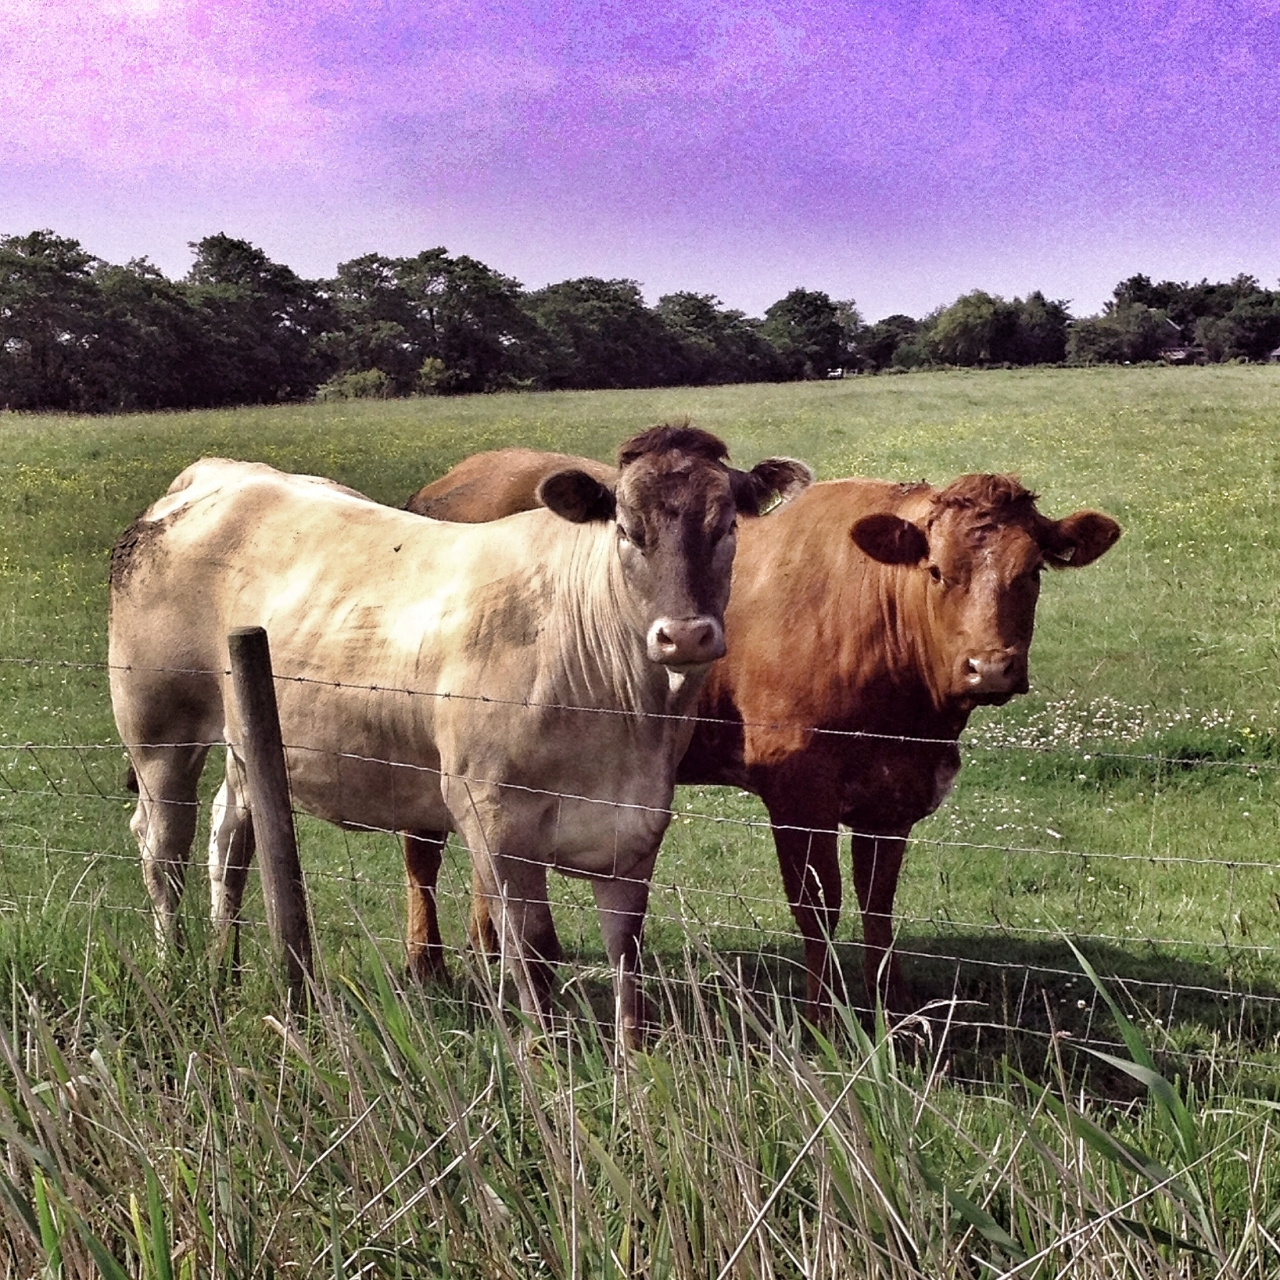 #Day13 #Animal #21DaysWorld #Lincolnshire #cows #LincolnshireRed #BritishWhite